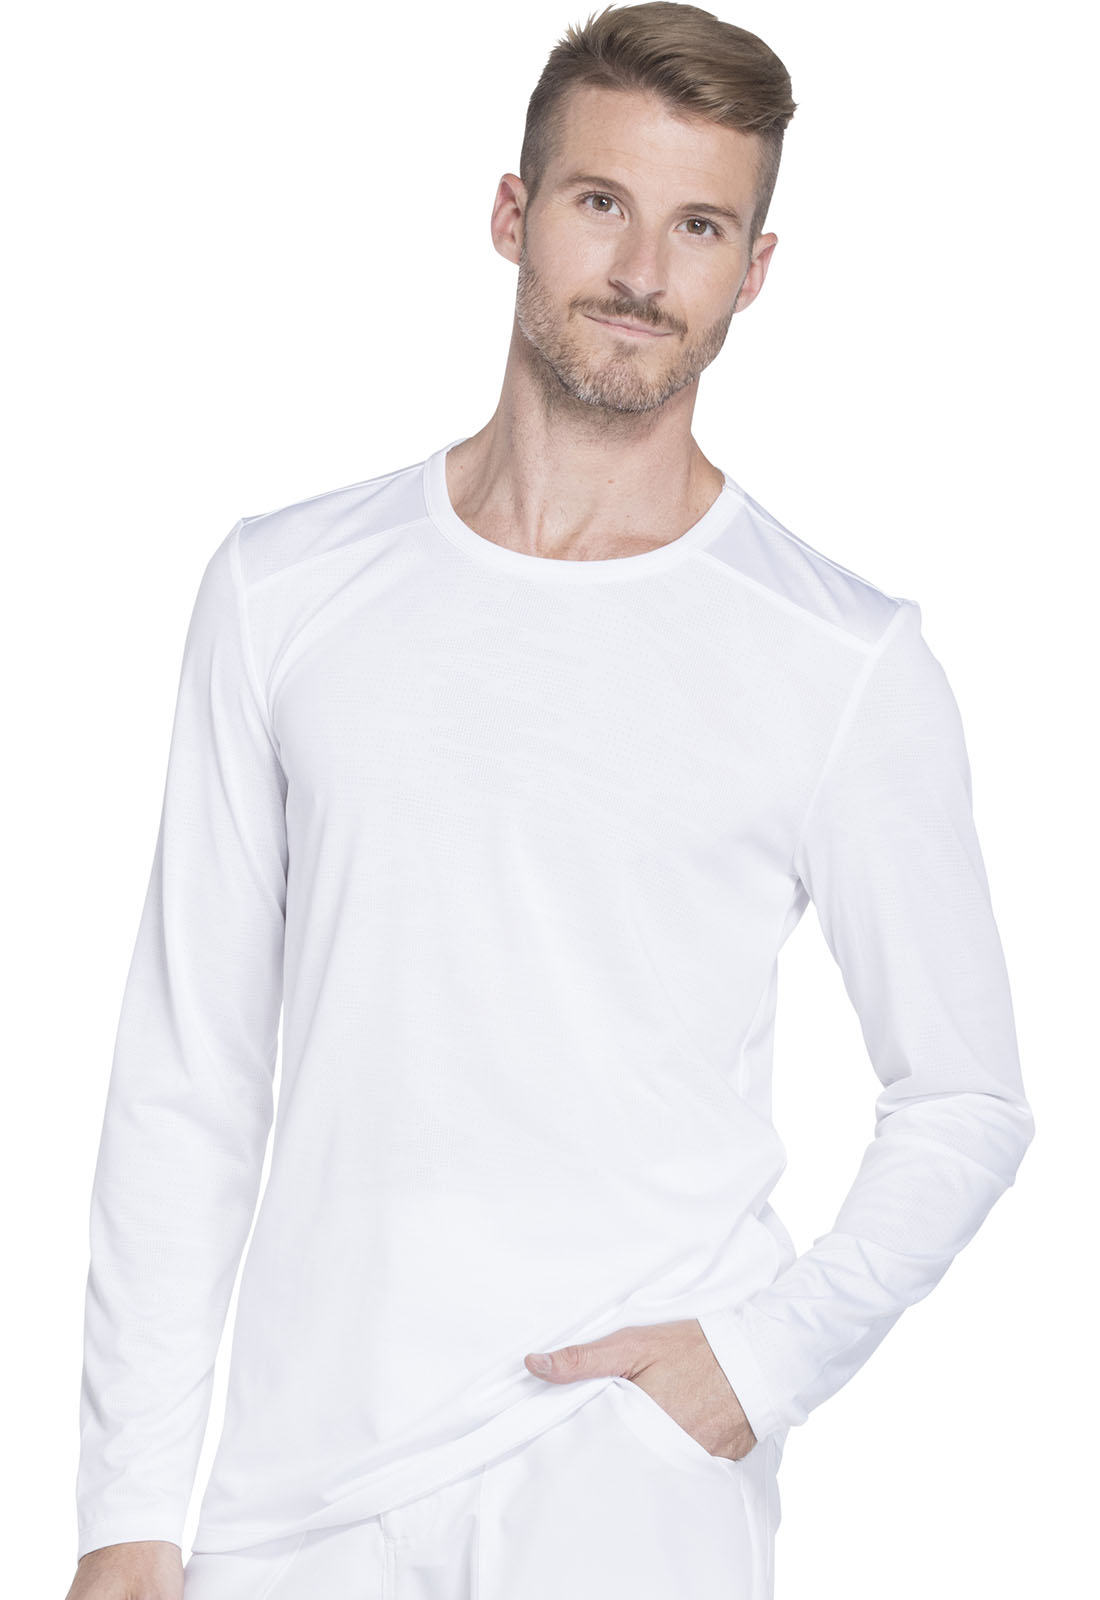 Mens Long Sleeve Underscrub Knit Top In White From Dickies Medical